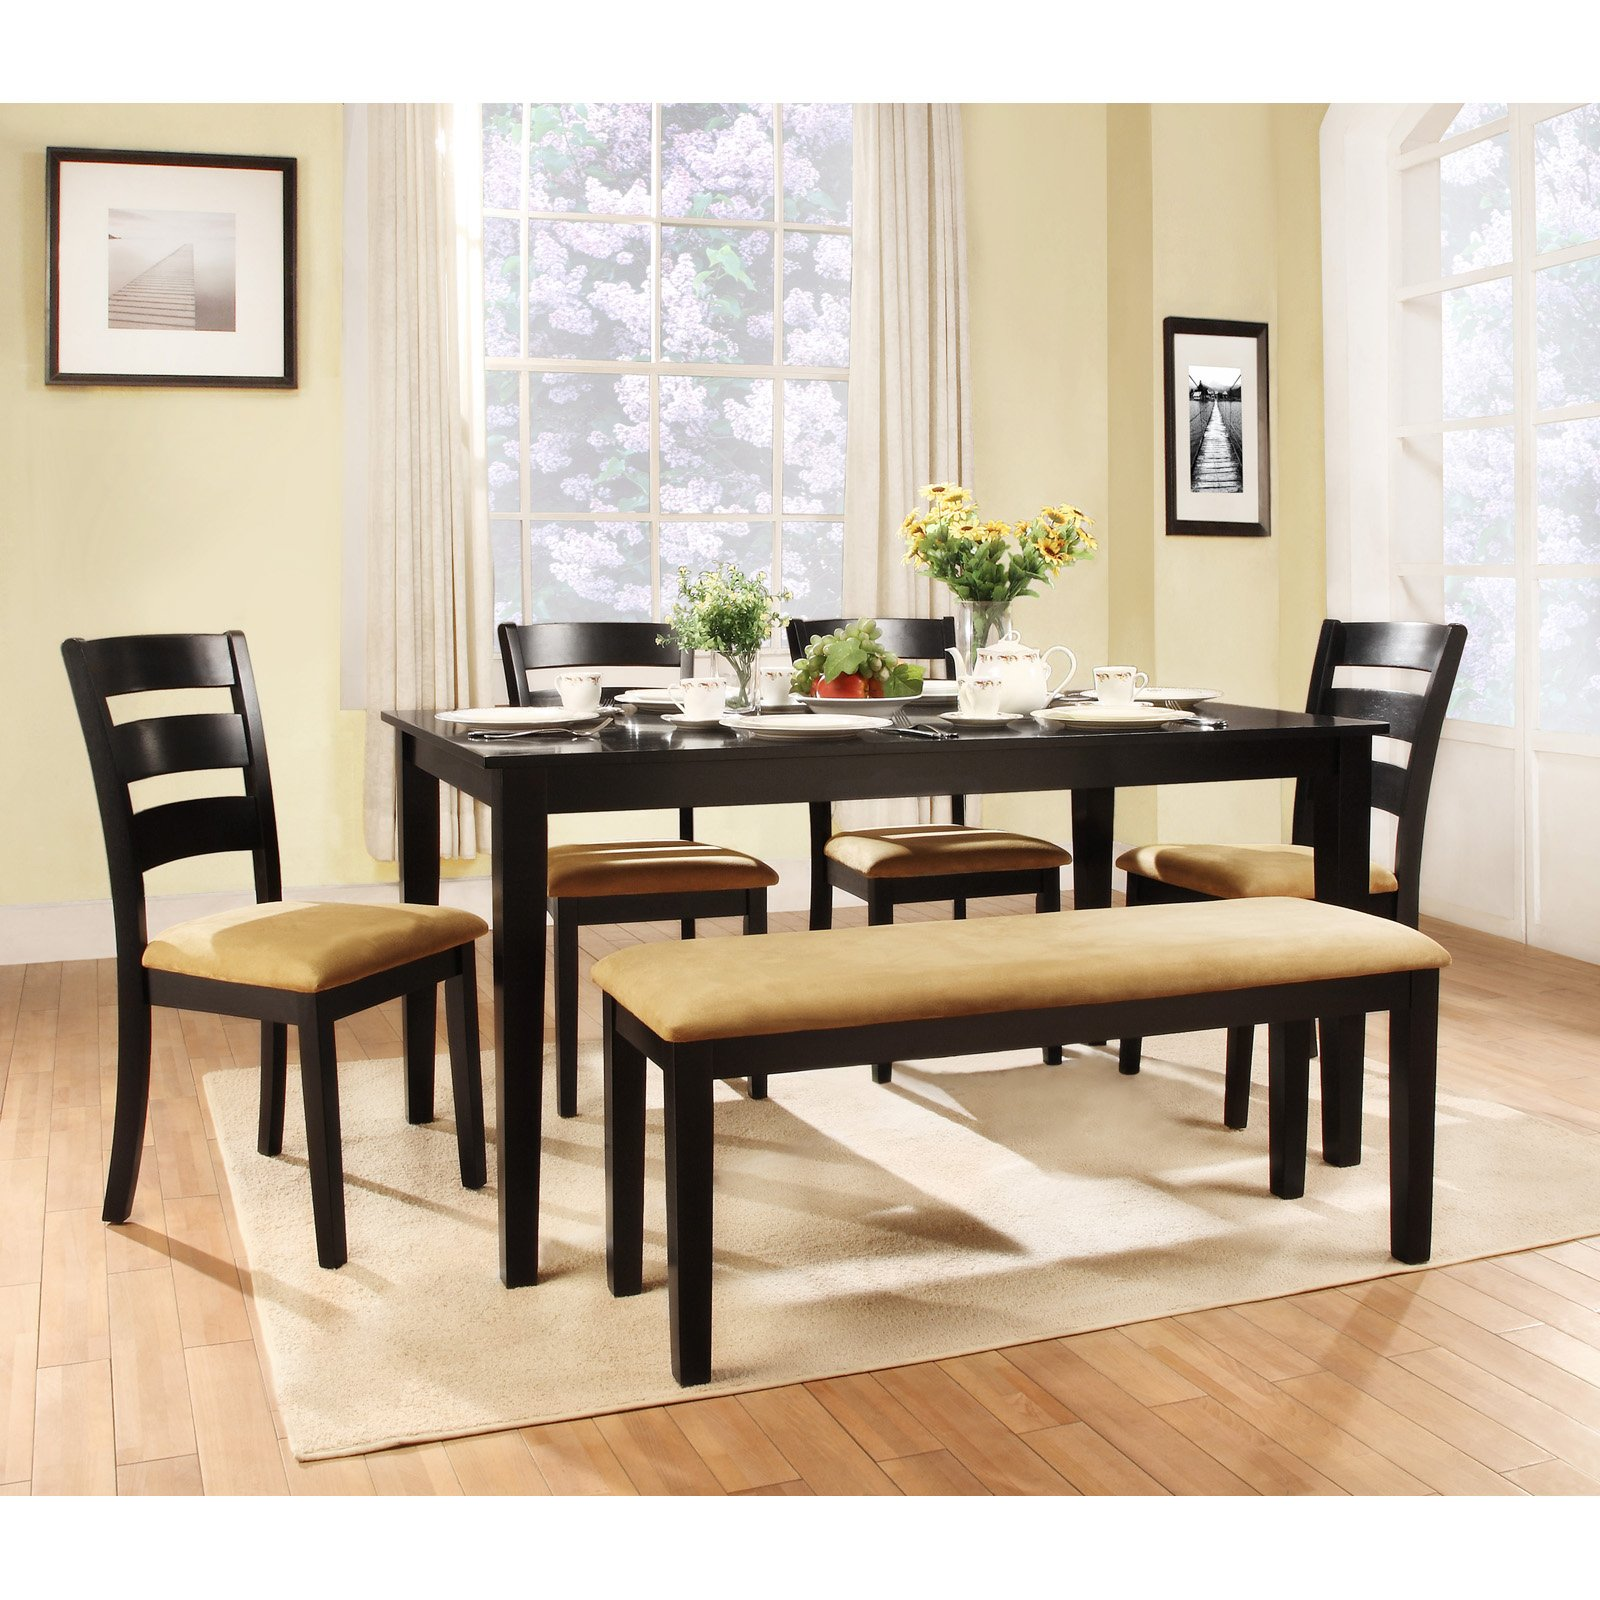 Modern bench style dining table set ideas homesfeed for Dining table set designs